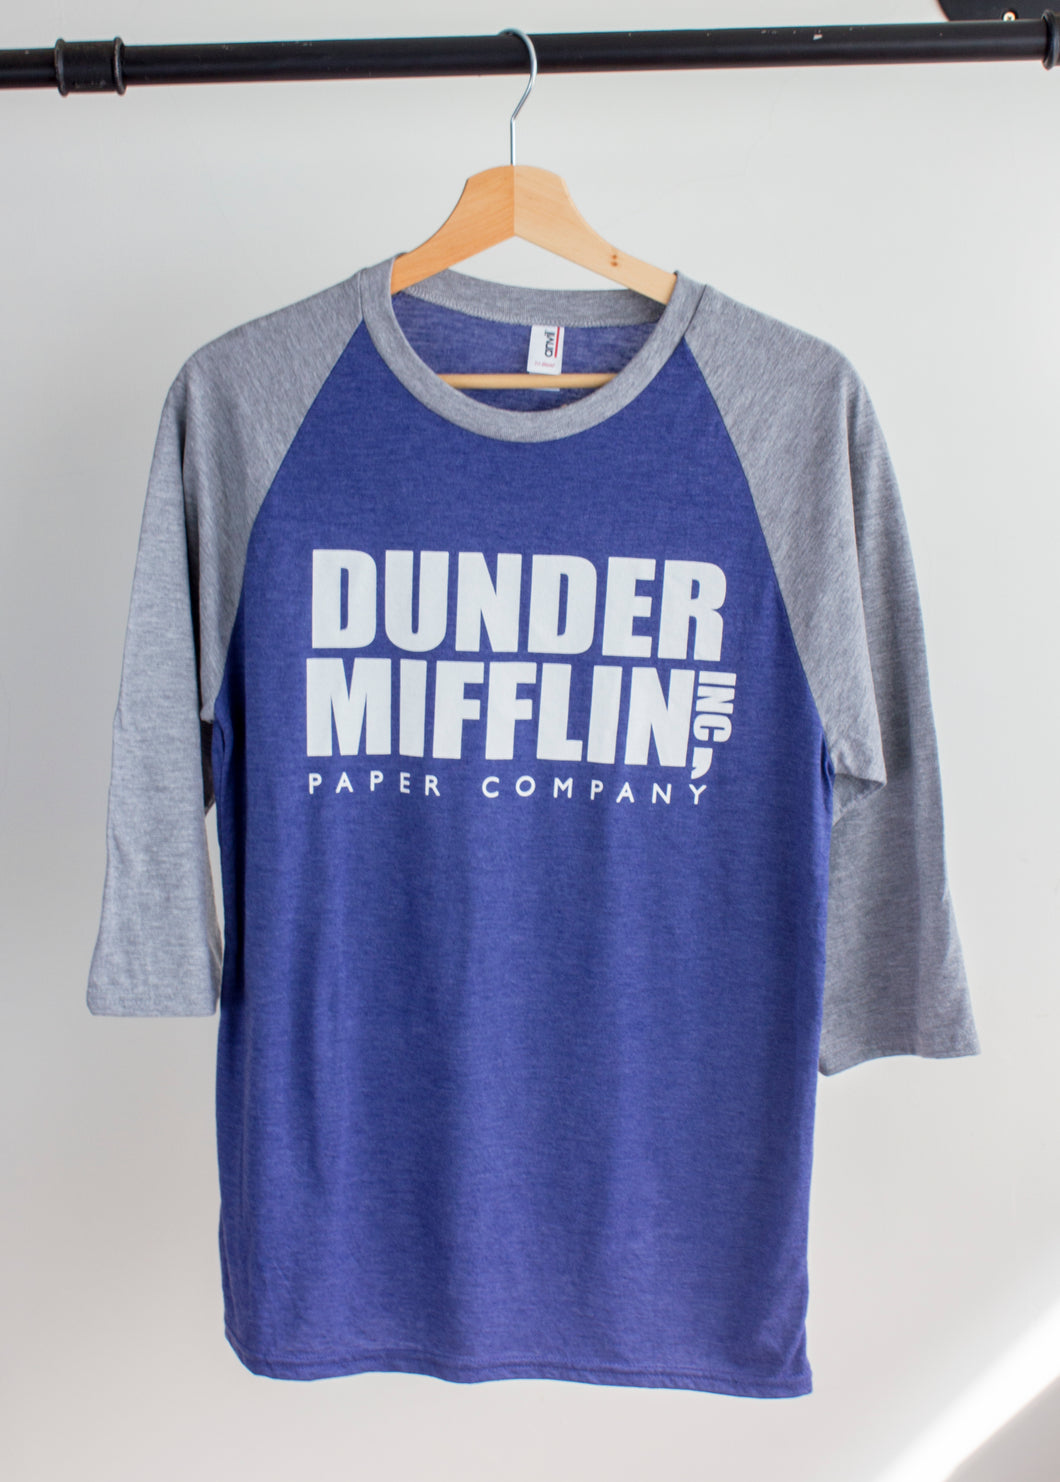 US office dunder mifflin print on a blue baseball tshirt